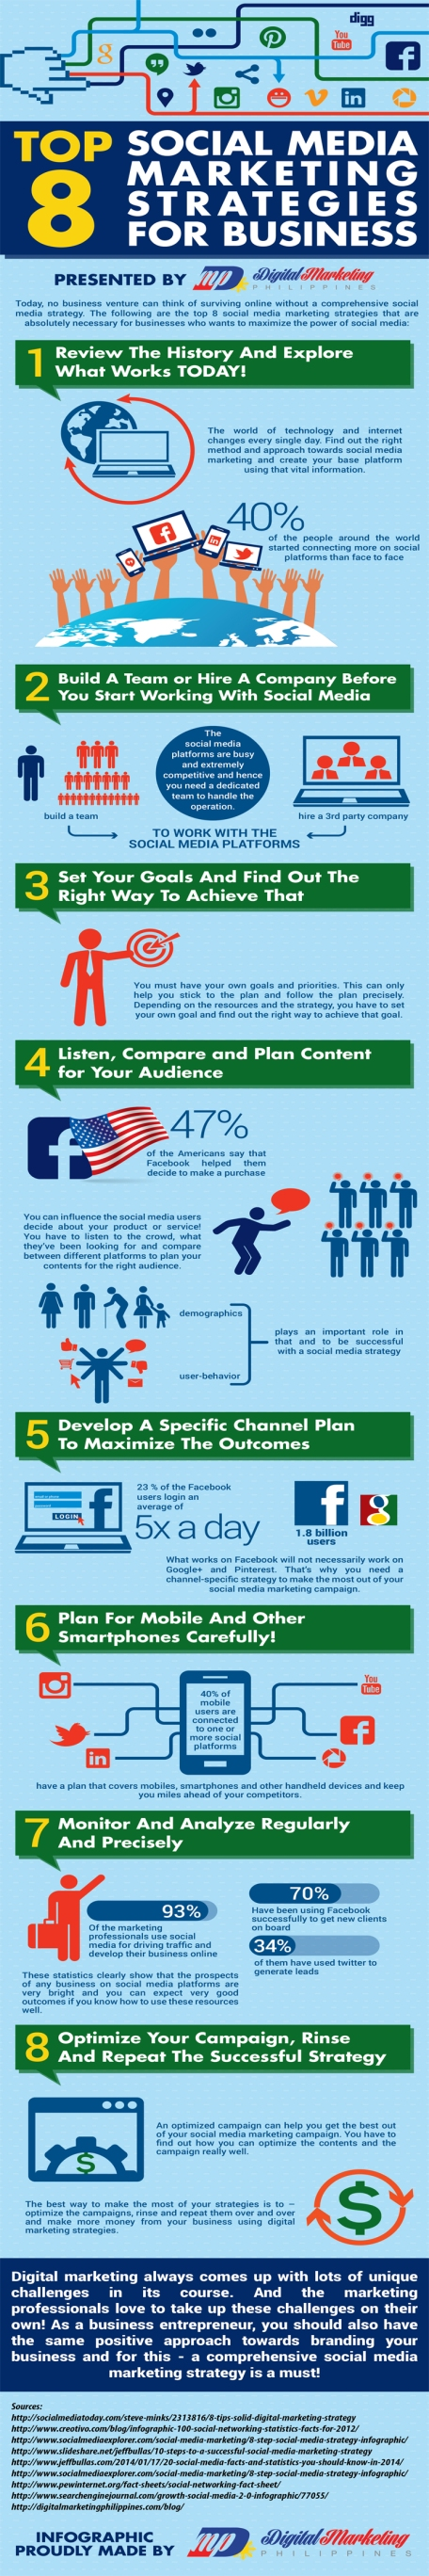 Top-8-Social-Media-Marketing-Strategies-for-Business (1)